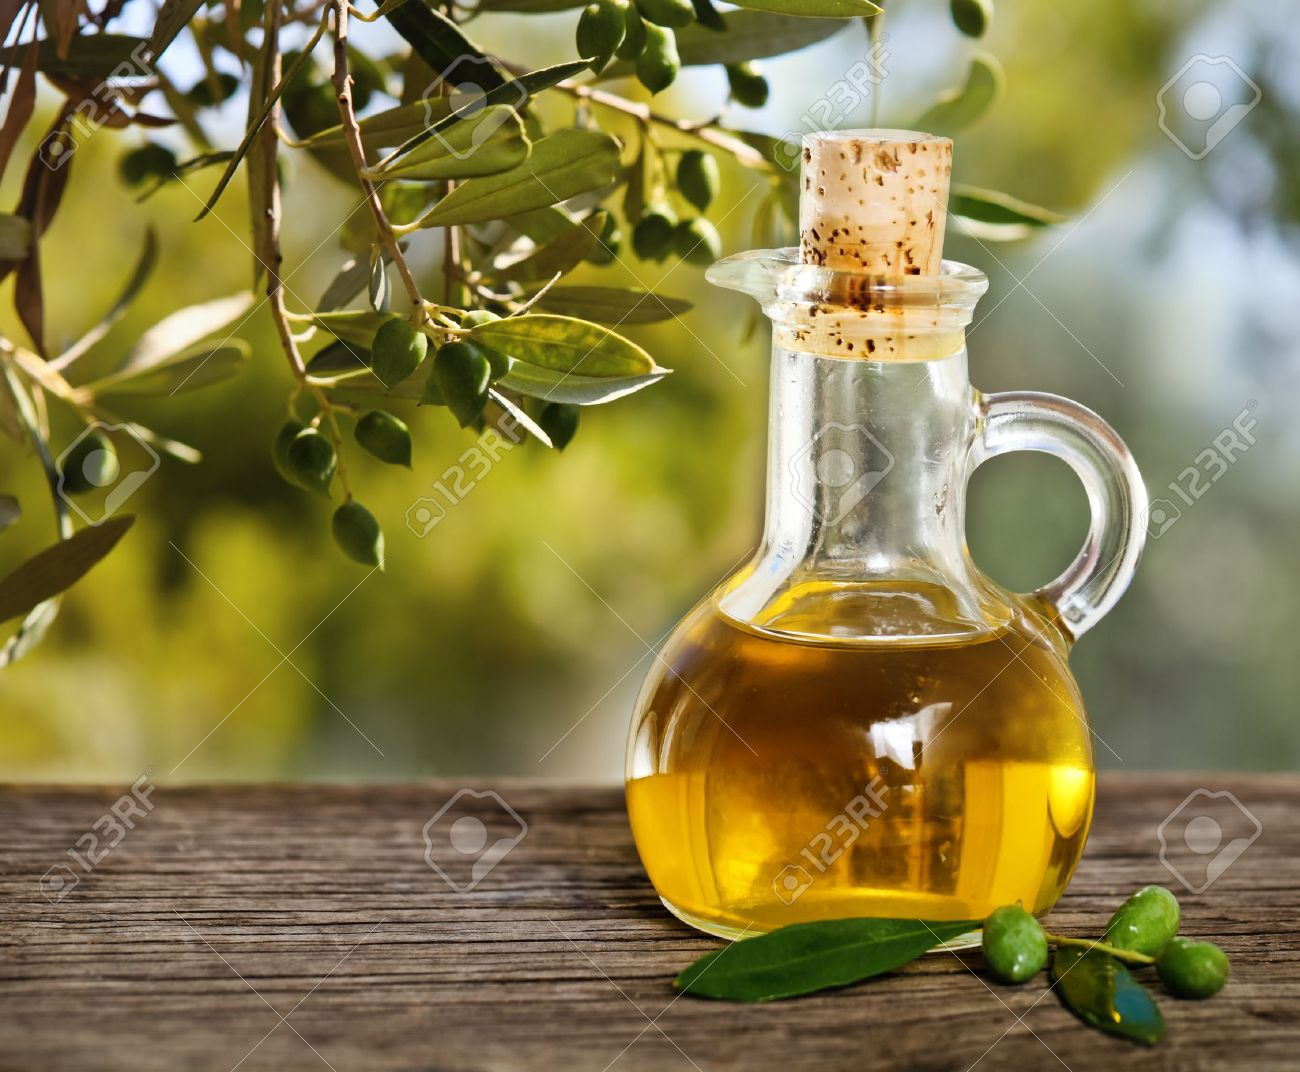 Olive oil and olive branch on the wooden table over nature background - 18363507